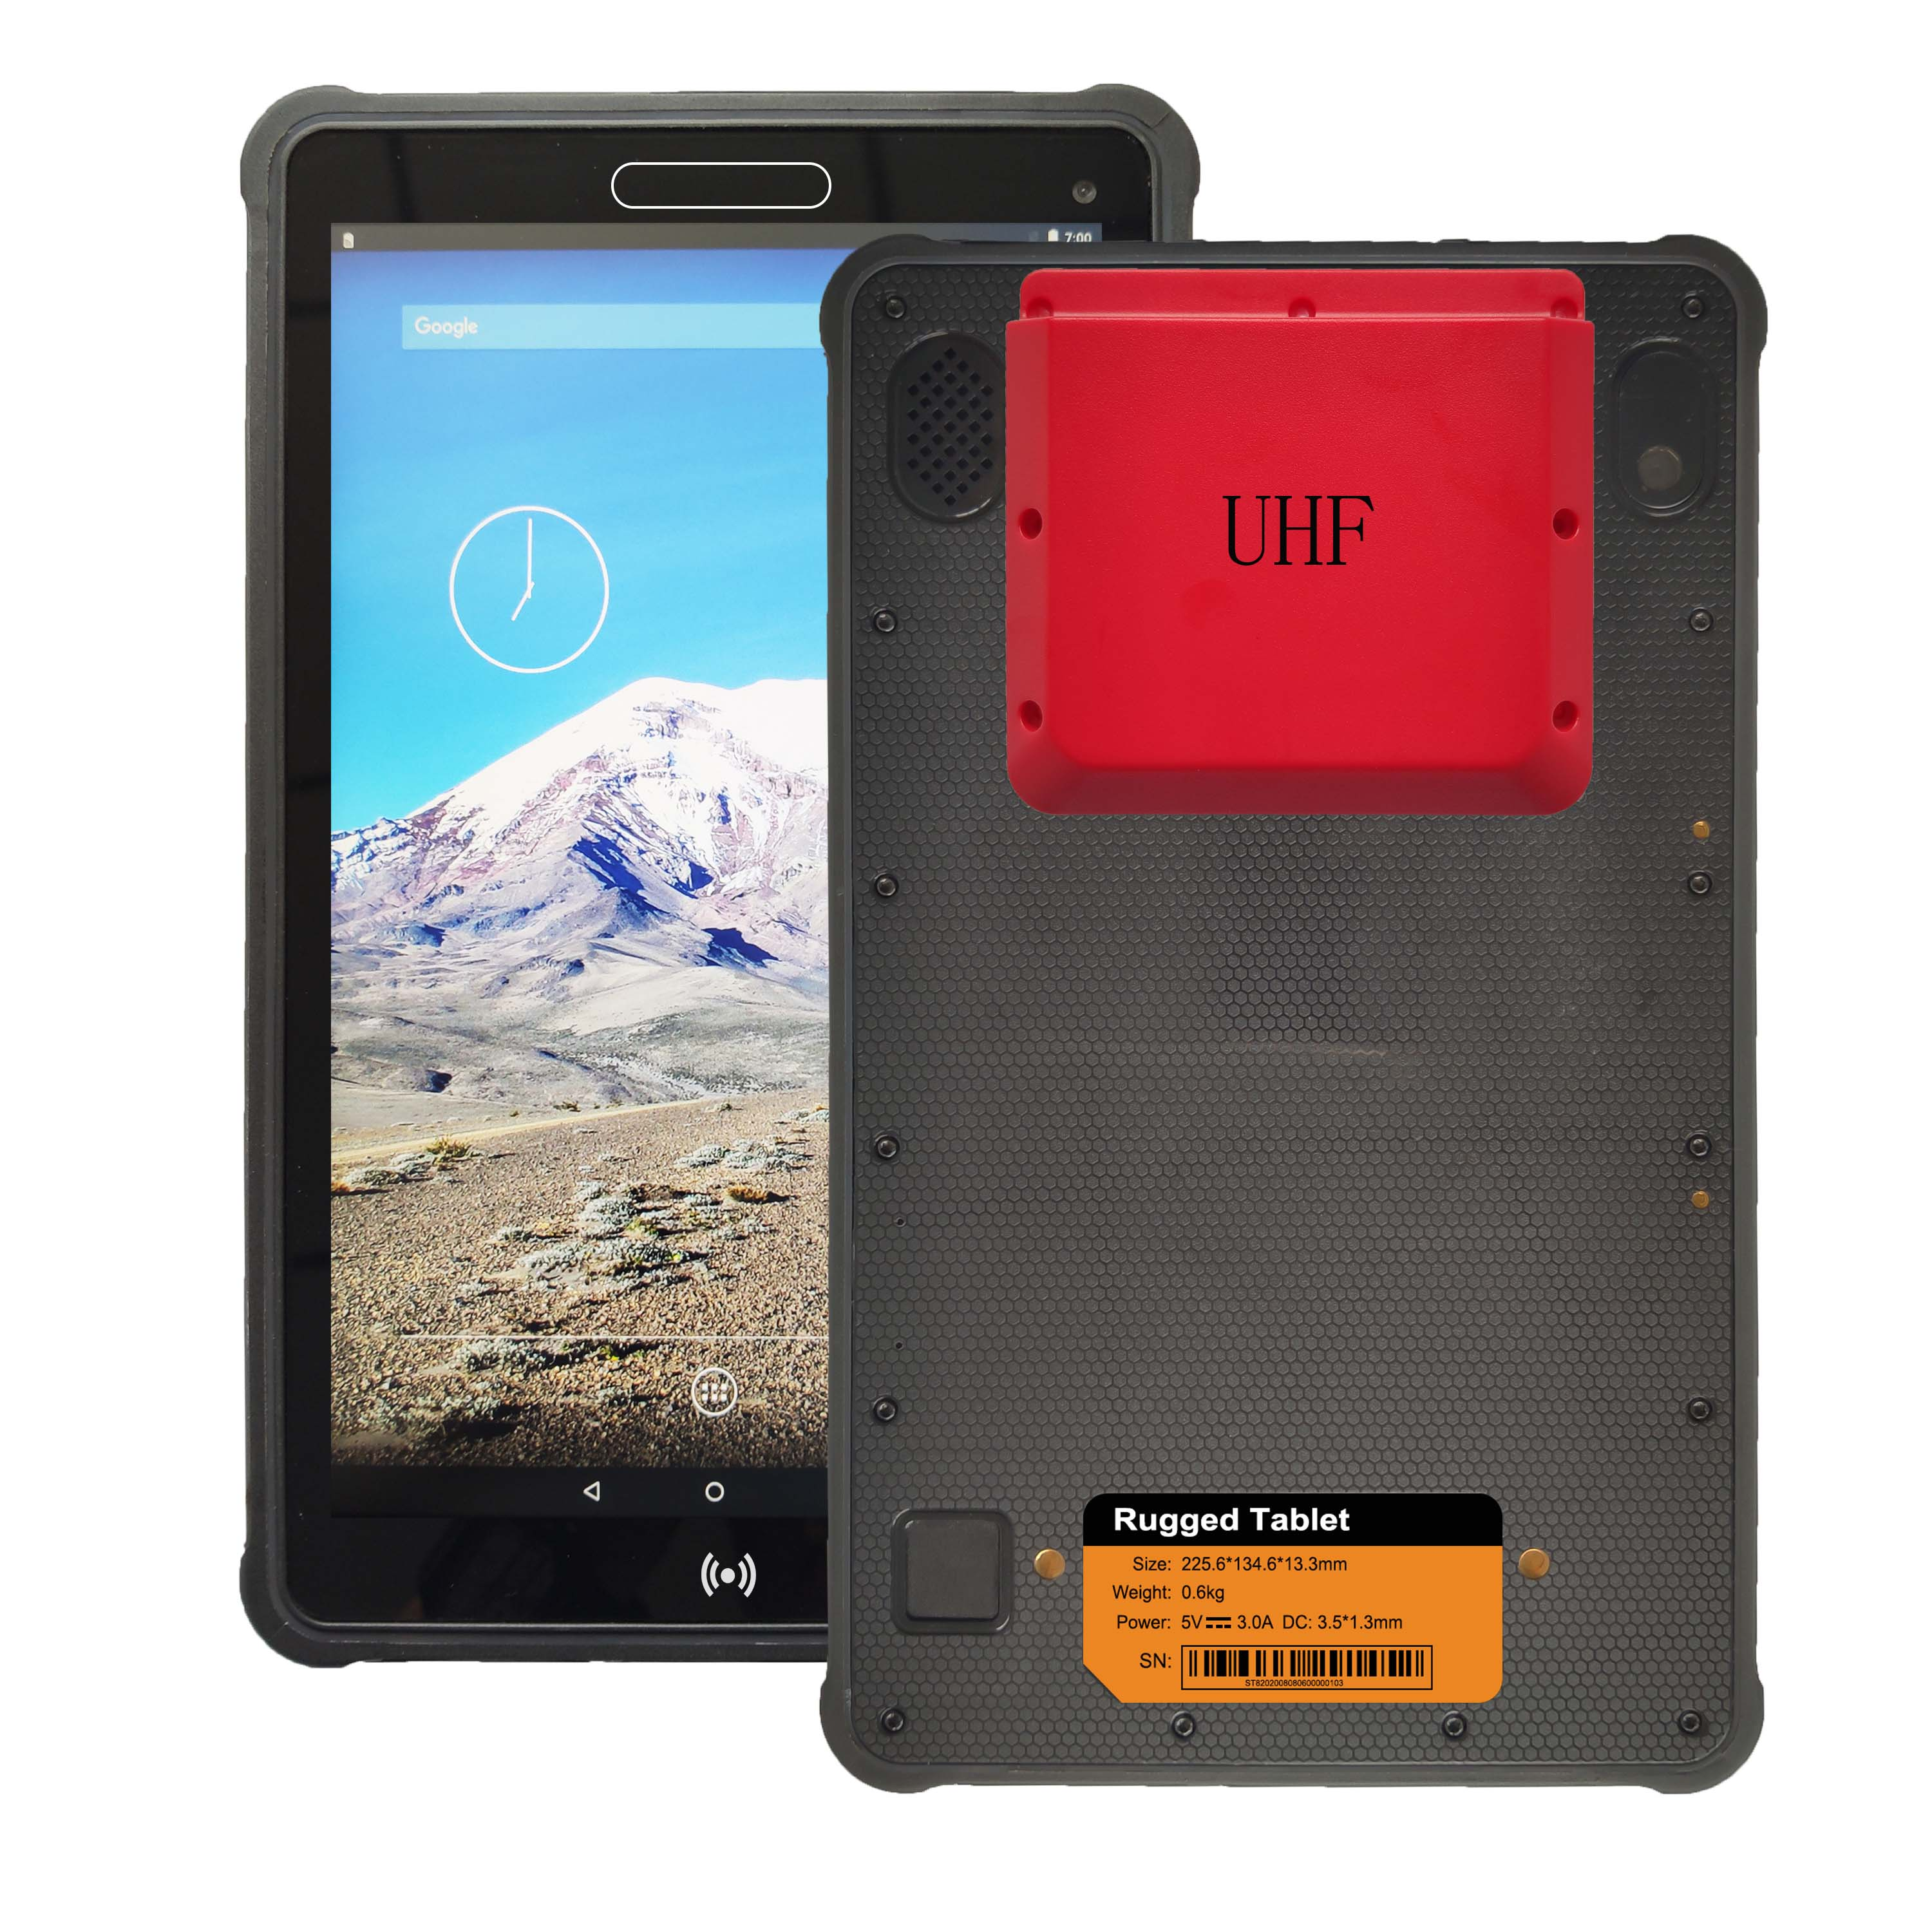 8 inch Windows 10 pro RFID UHF Rugged Tablet RT8